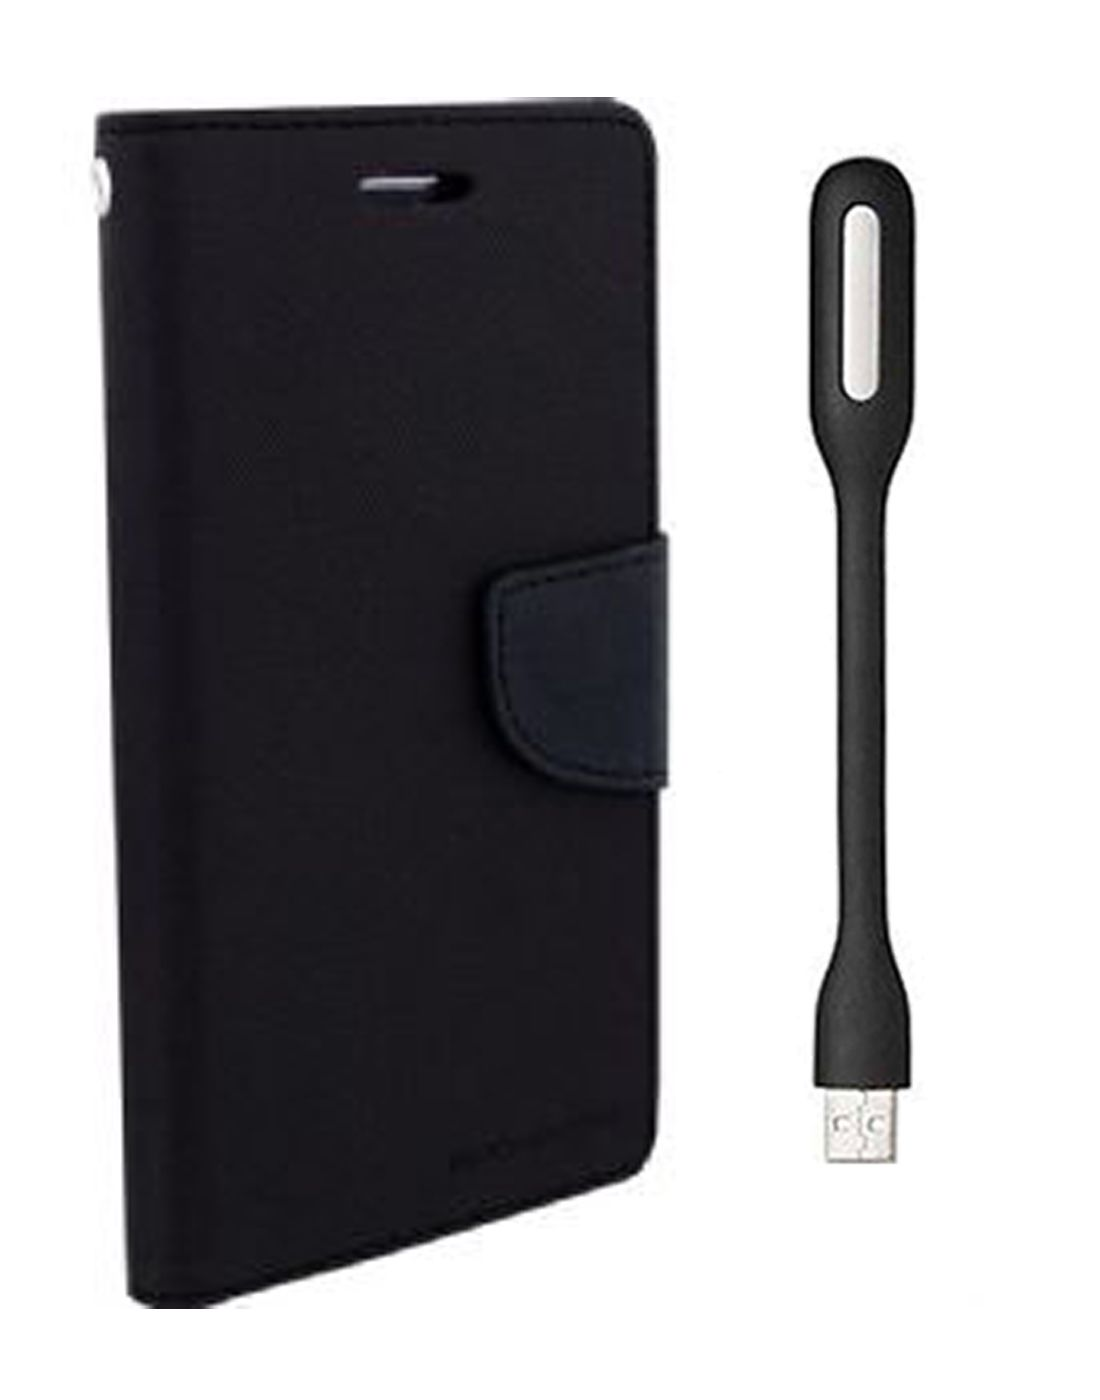 Wallet Flip Case Back Cover For Micromax Uuphoria -(Black) + Flexible Mini LED Stick Lamp Light By Style Crome